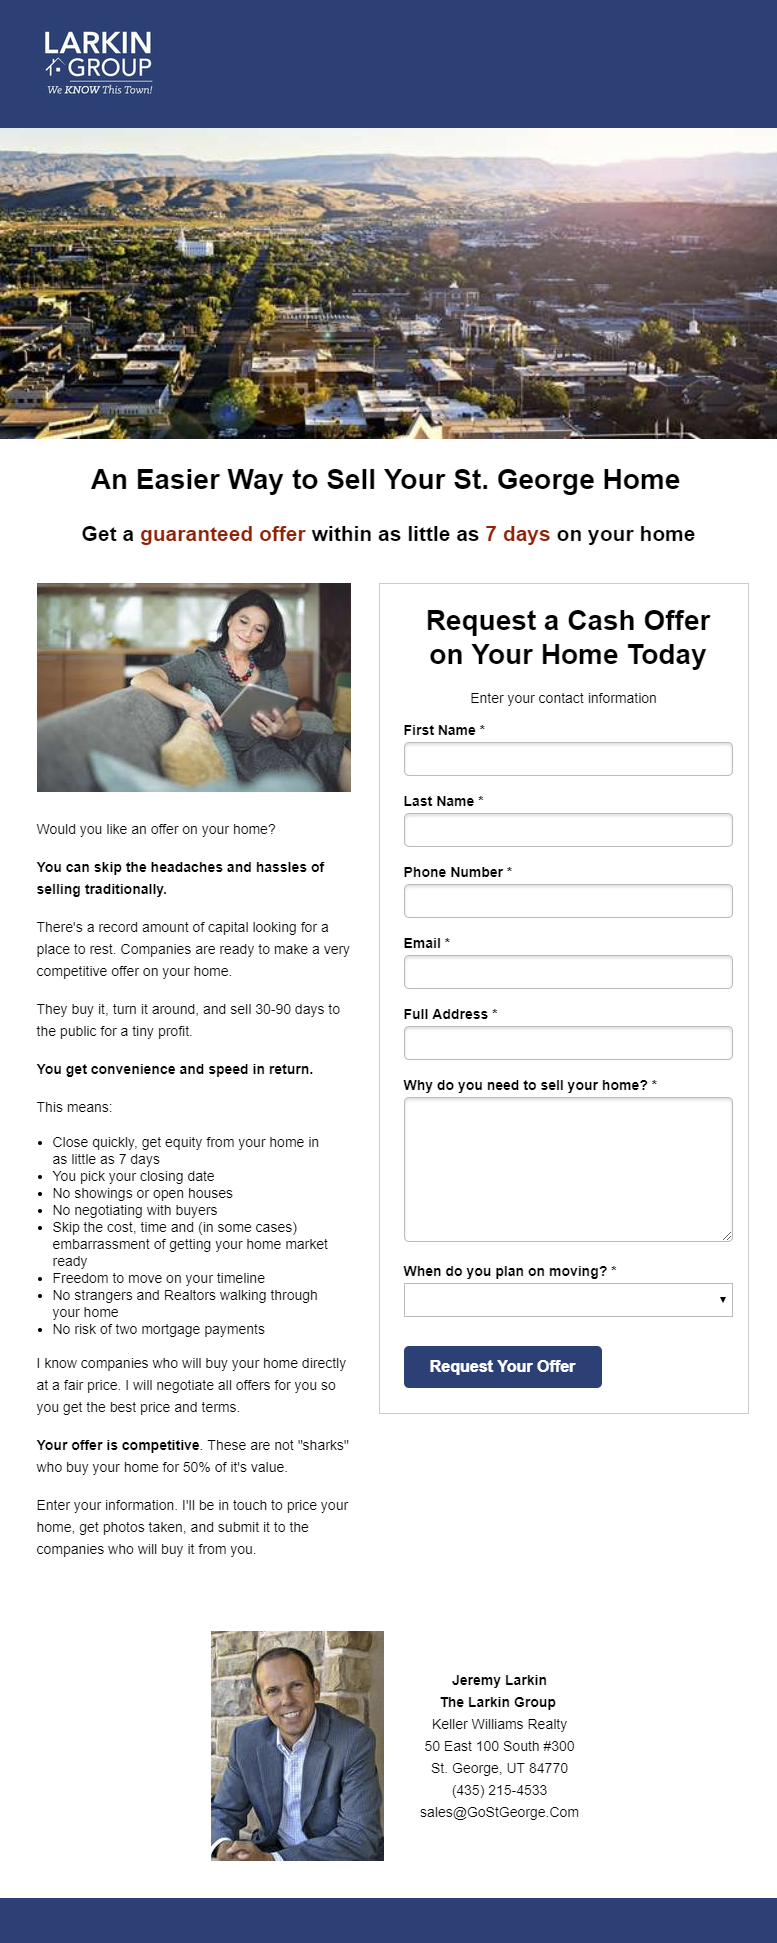 Example guaranteed offer landing page